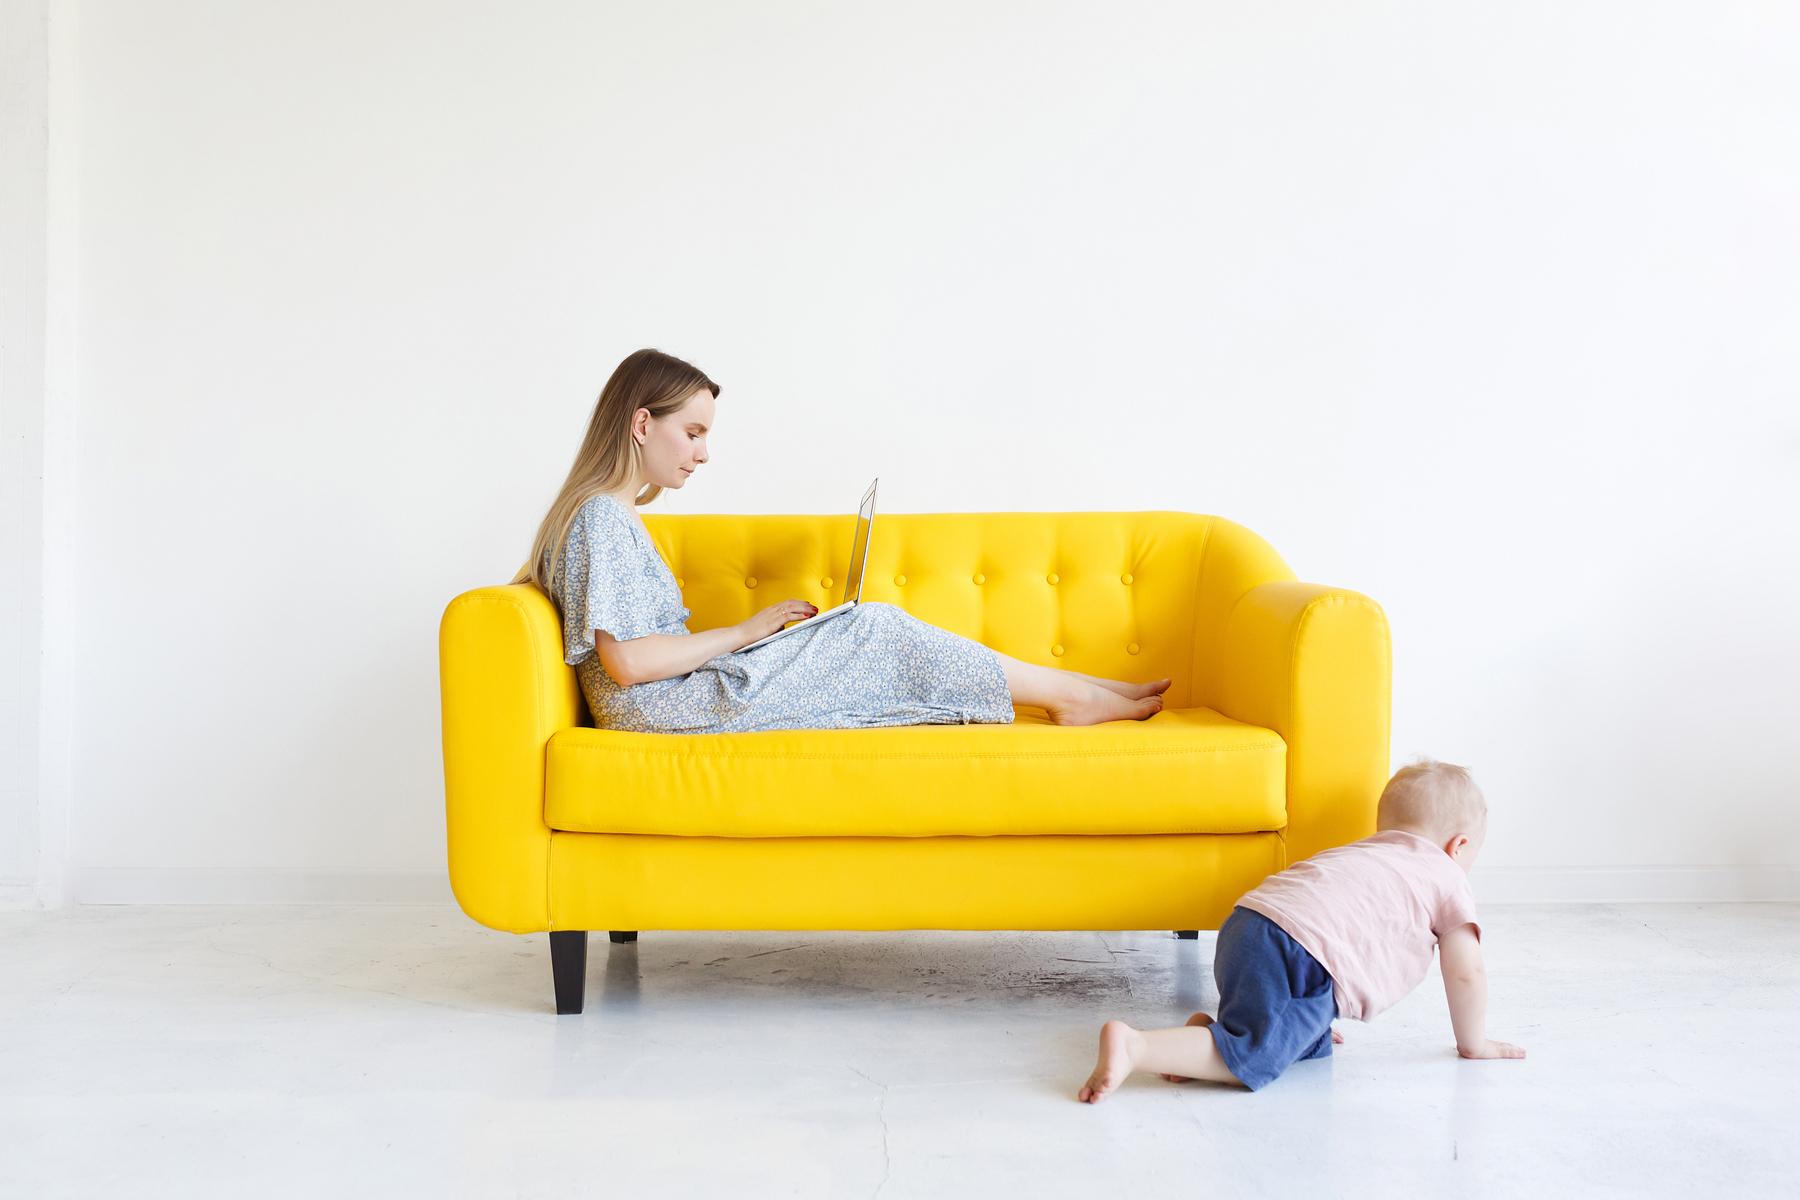 A mother working from home